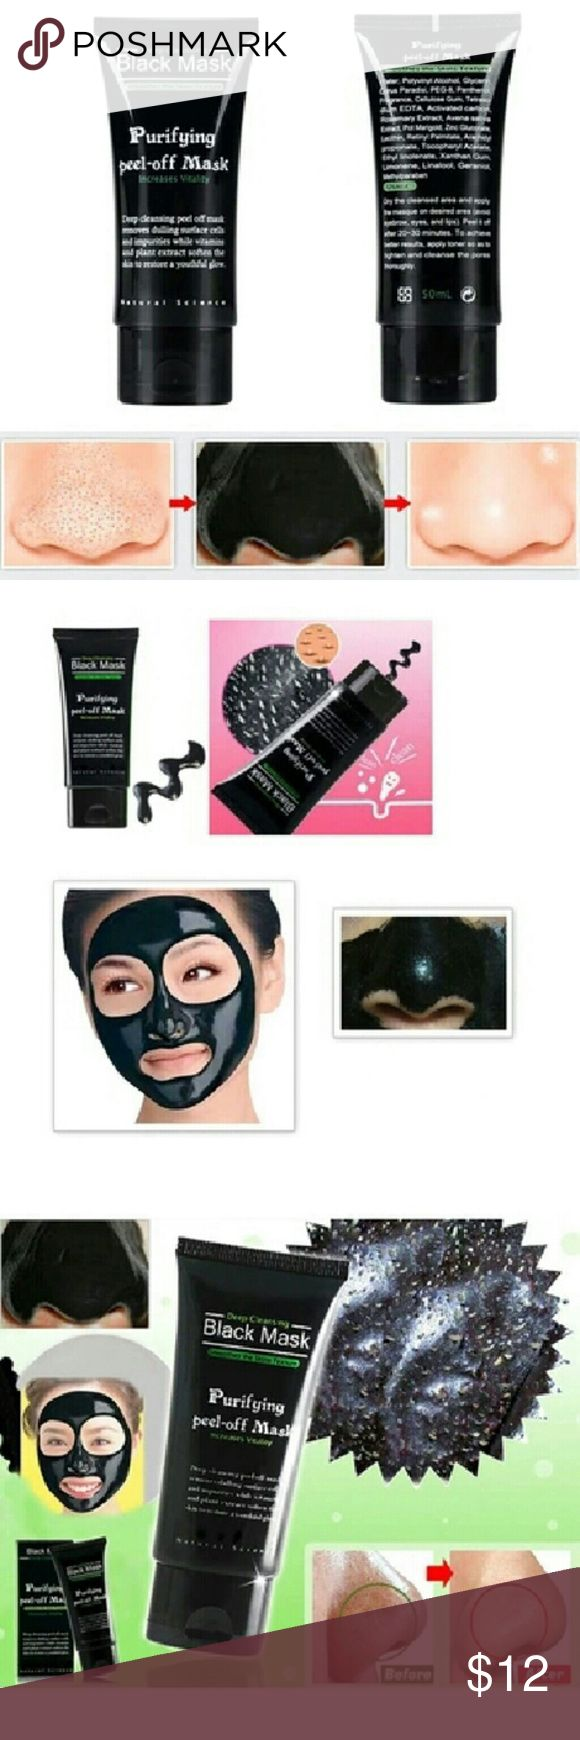 Blackhead Remove Acne Nose Face Mask Features: Removes blackheads Get rid of acne Eliminate oily  Specification :50 g/branch Applicable people : -Facial skin aging, fine lines and blemishes -Oily skin strawberry nose -Nose large pores blackheads -Daily sit the computer in front of computer radiation  Usage :Dry the cleansed area and apply the masque on desired area(avoid eyebrow,eyes,and lips).peel it off after 20-30 minutes.  Package including : 1 pc Blackhead Remover Mud Makeup